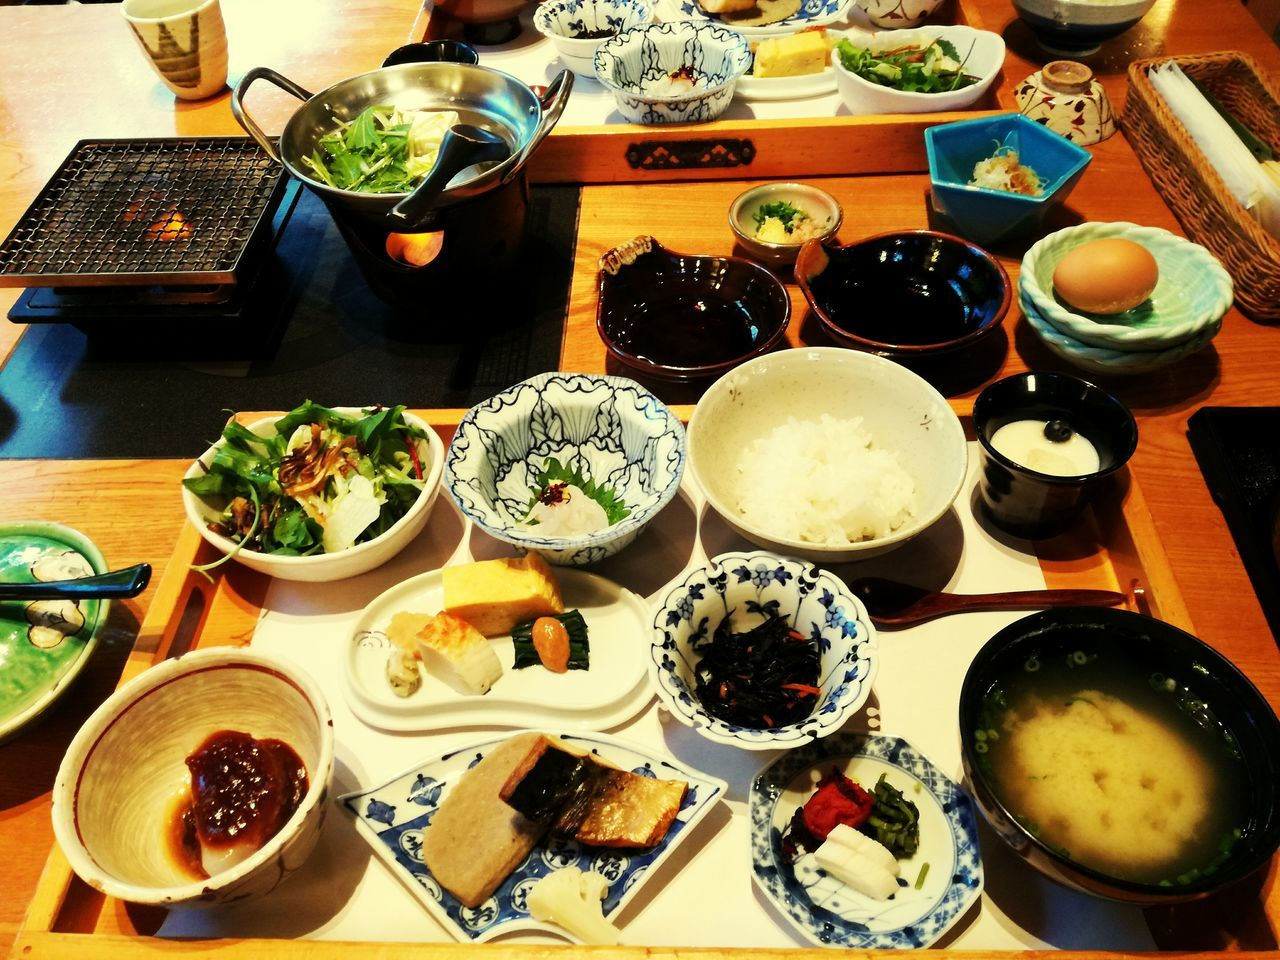 Japanese Breakfast Yummy Hot Spring Onsen Ready-to-eat Meal Healthy Eating